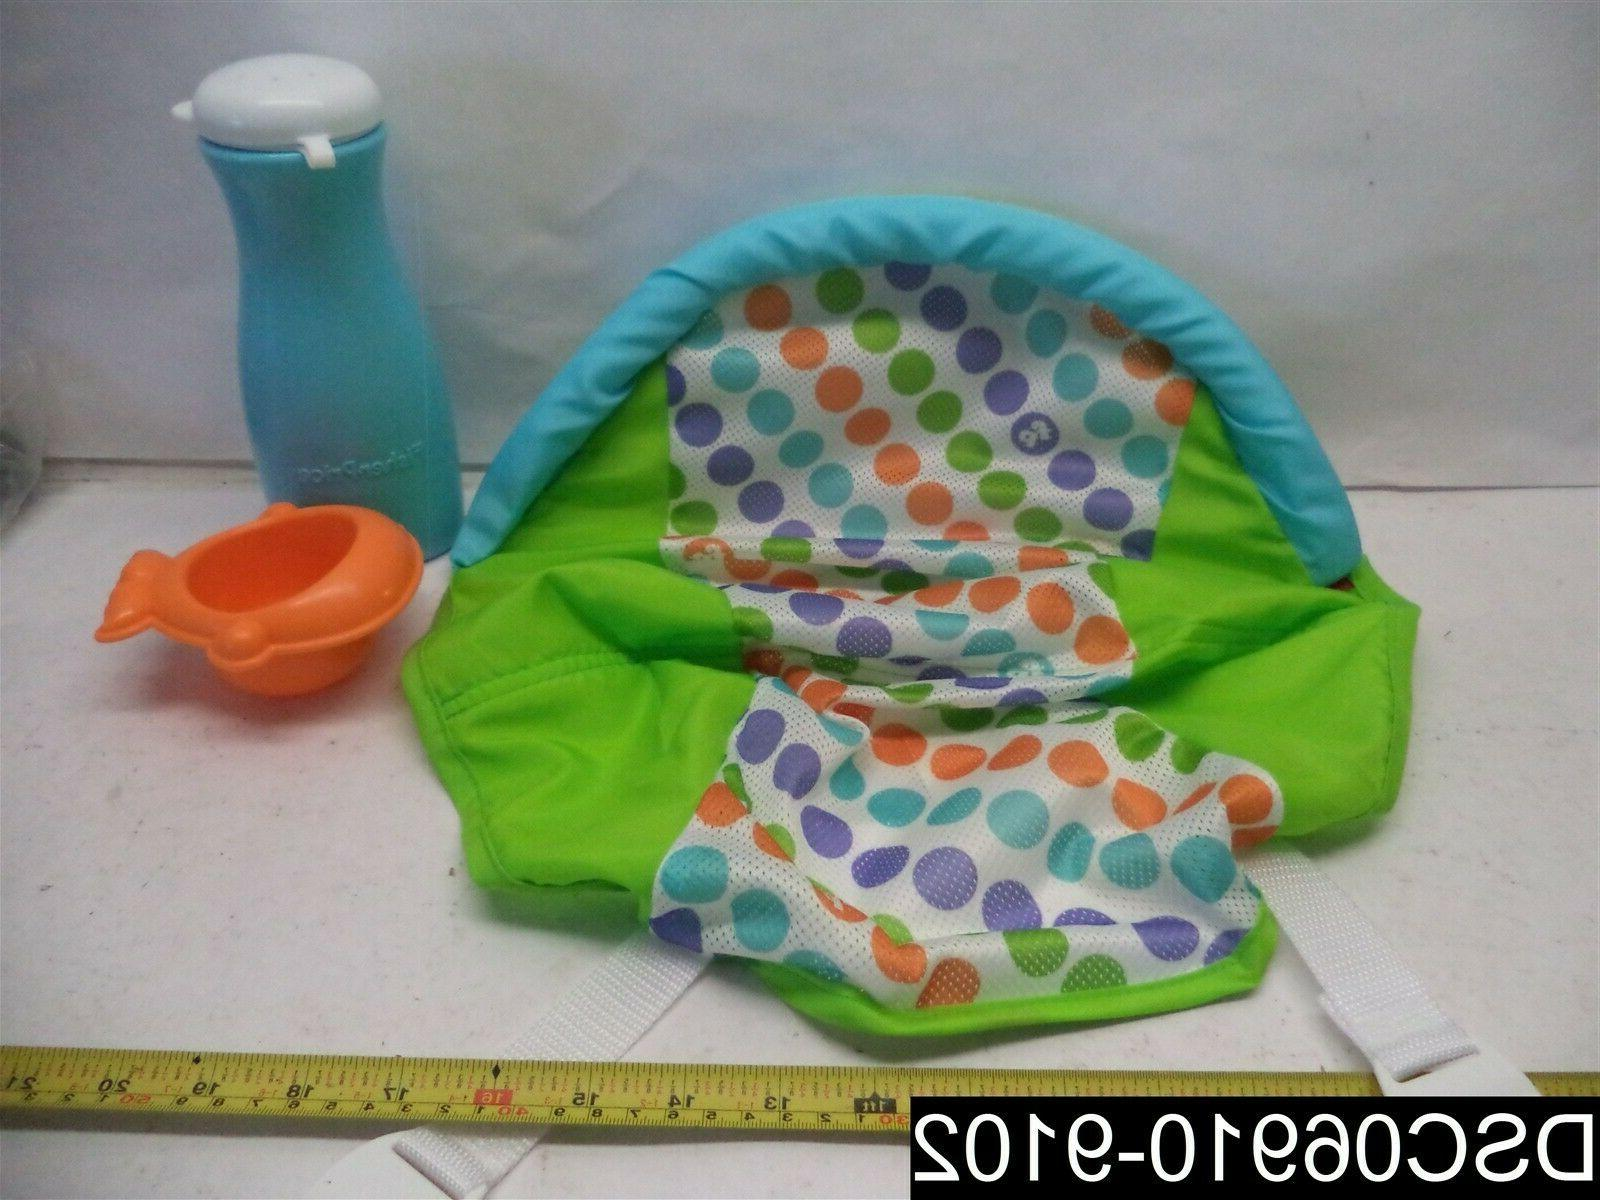 accessories only fbm94 fisher price baby bathtub